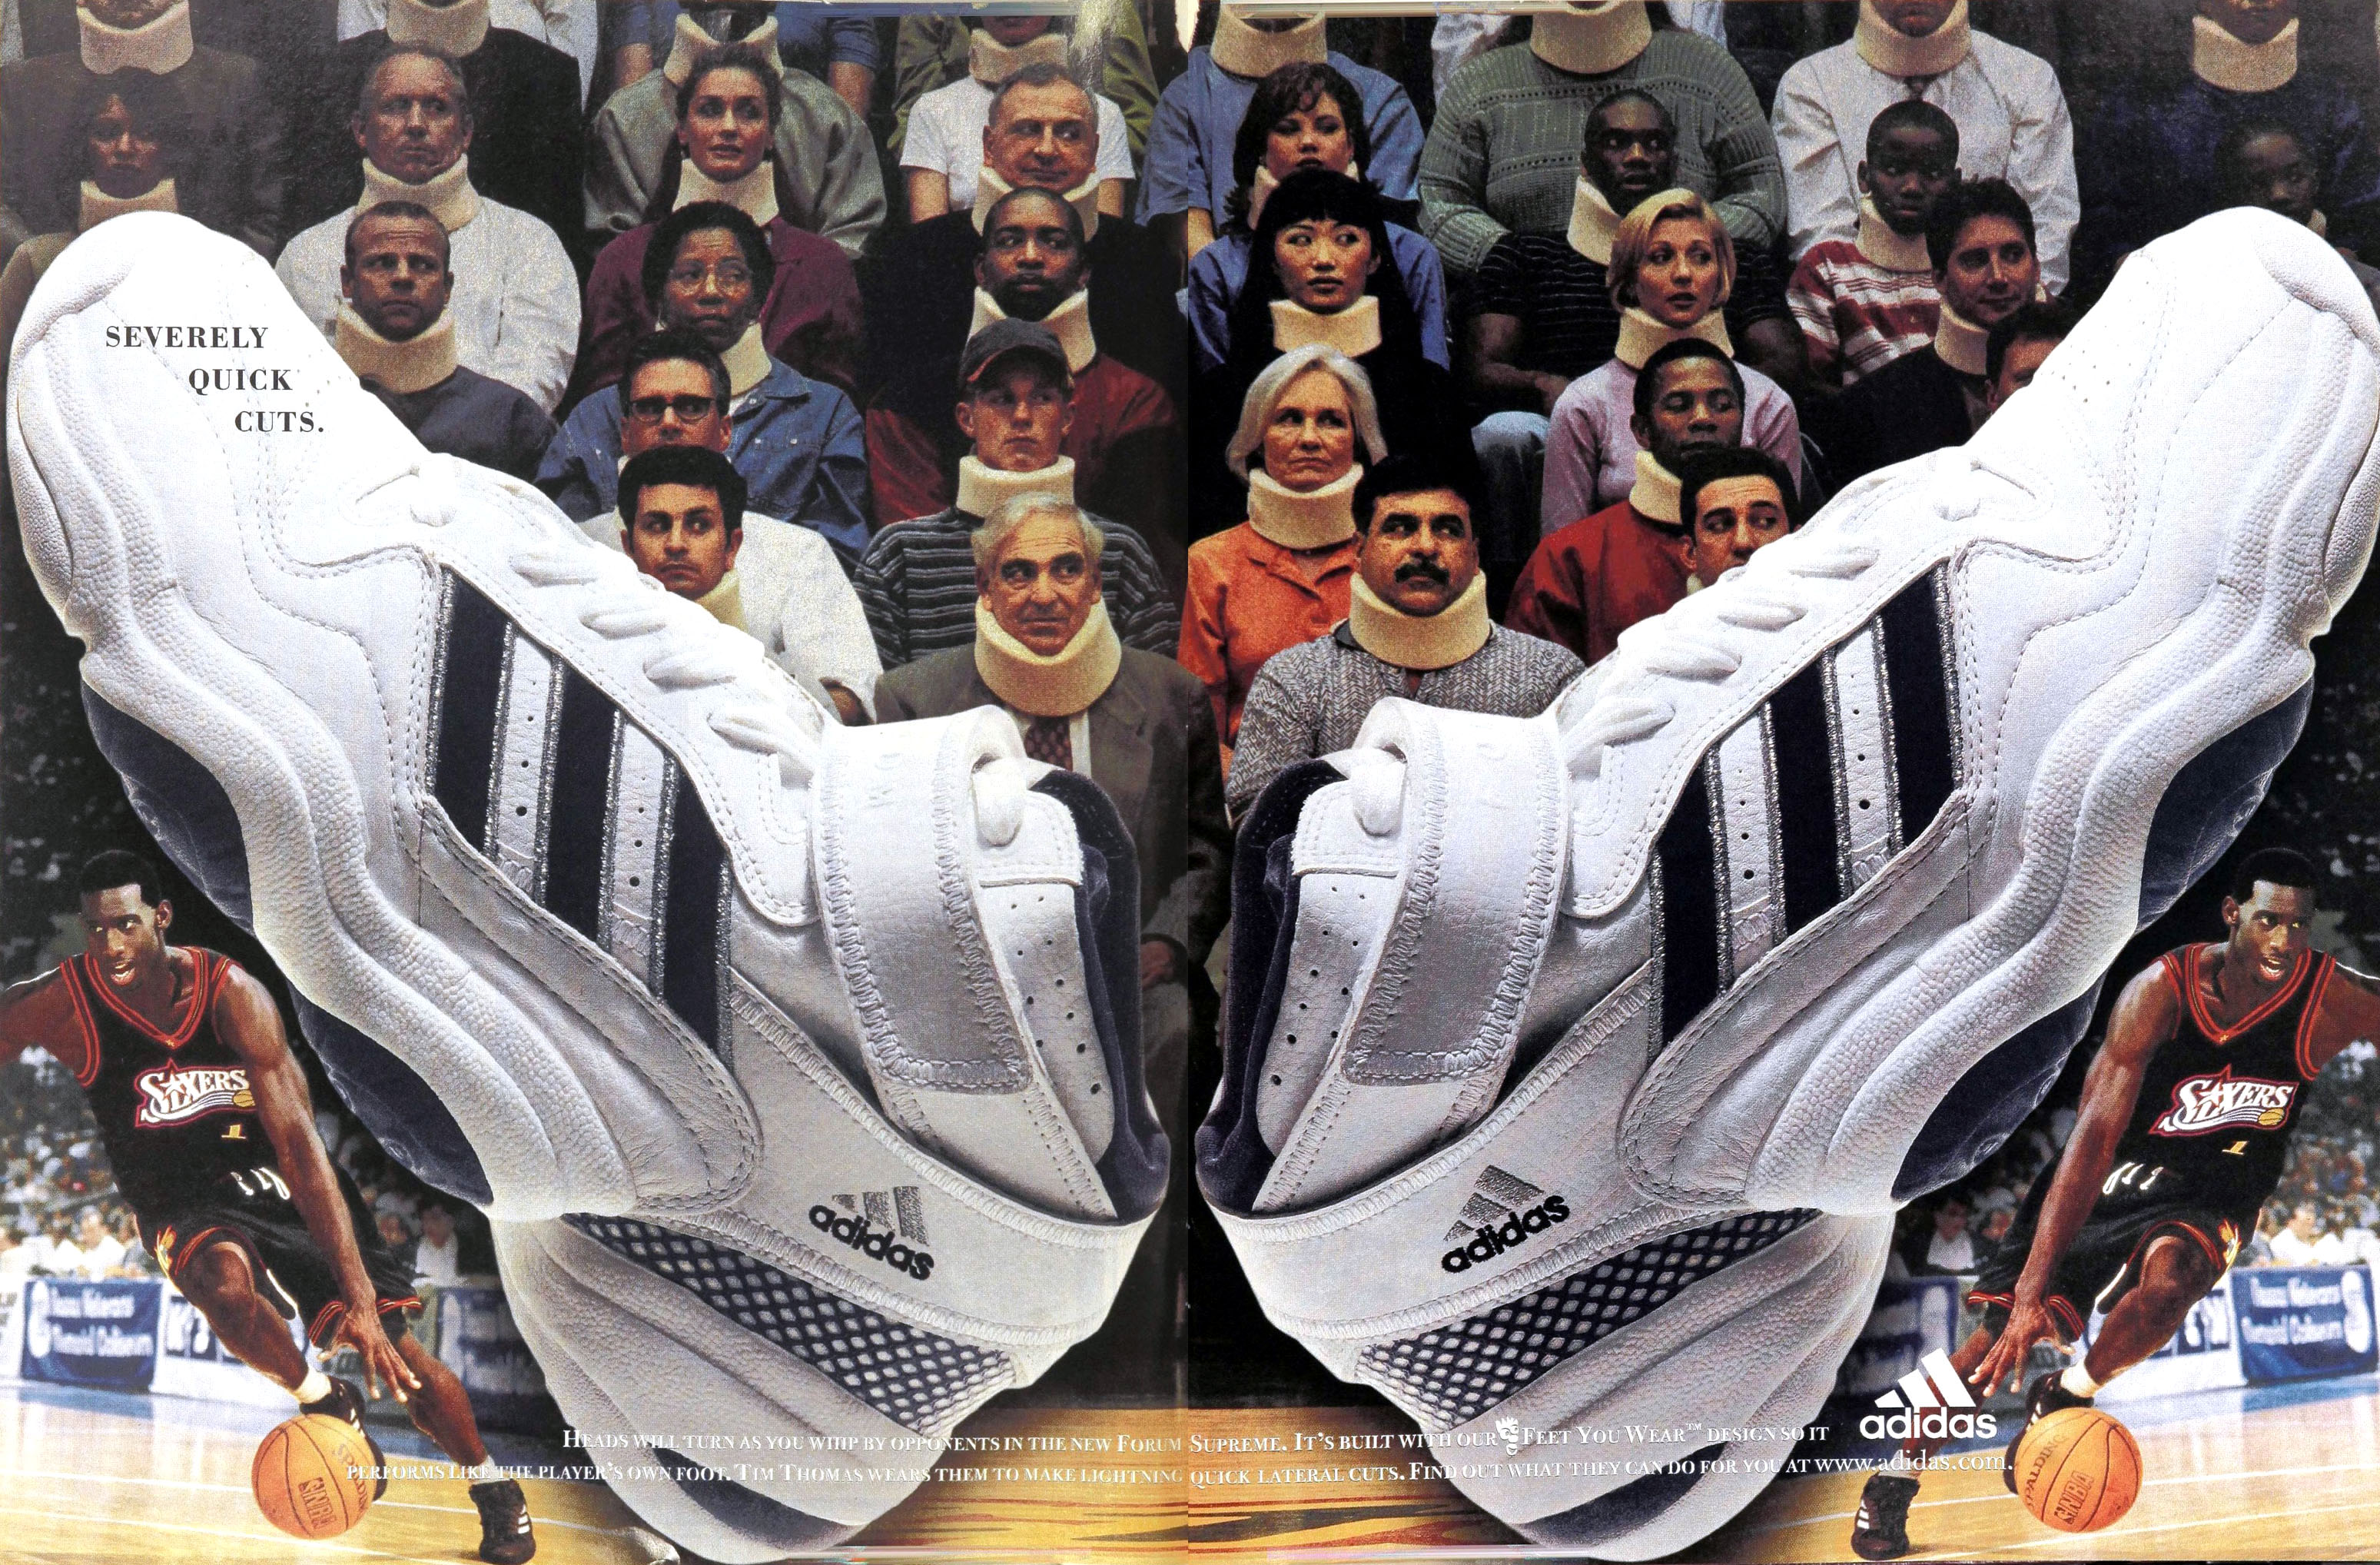 Time for a Renaissance? Reminiscing on the adidas Feet You